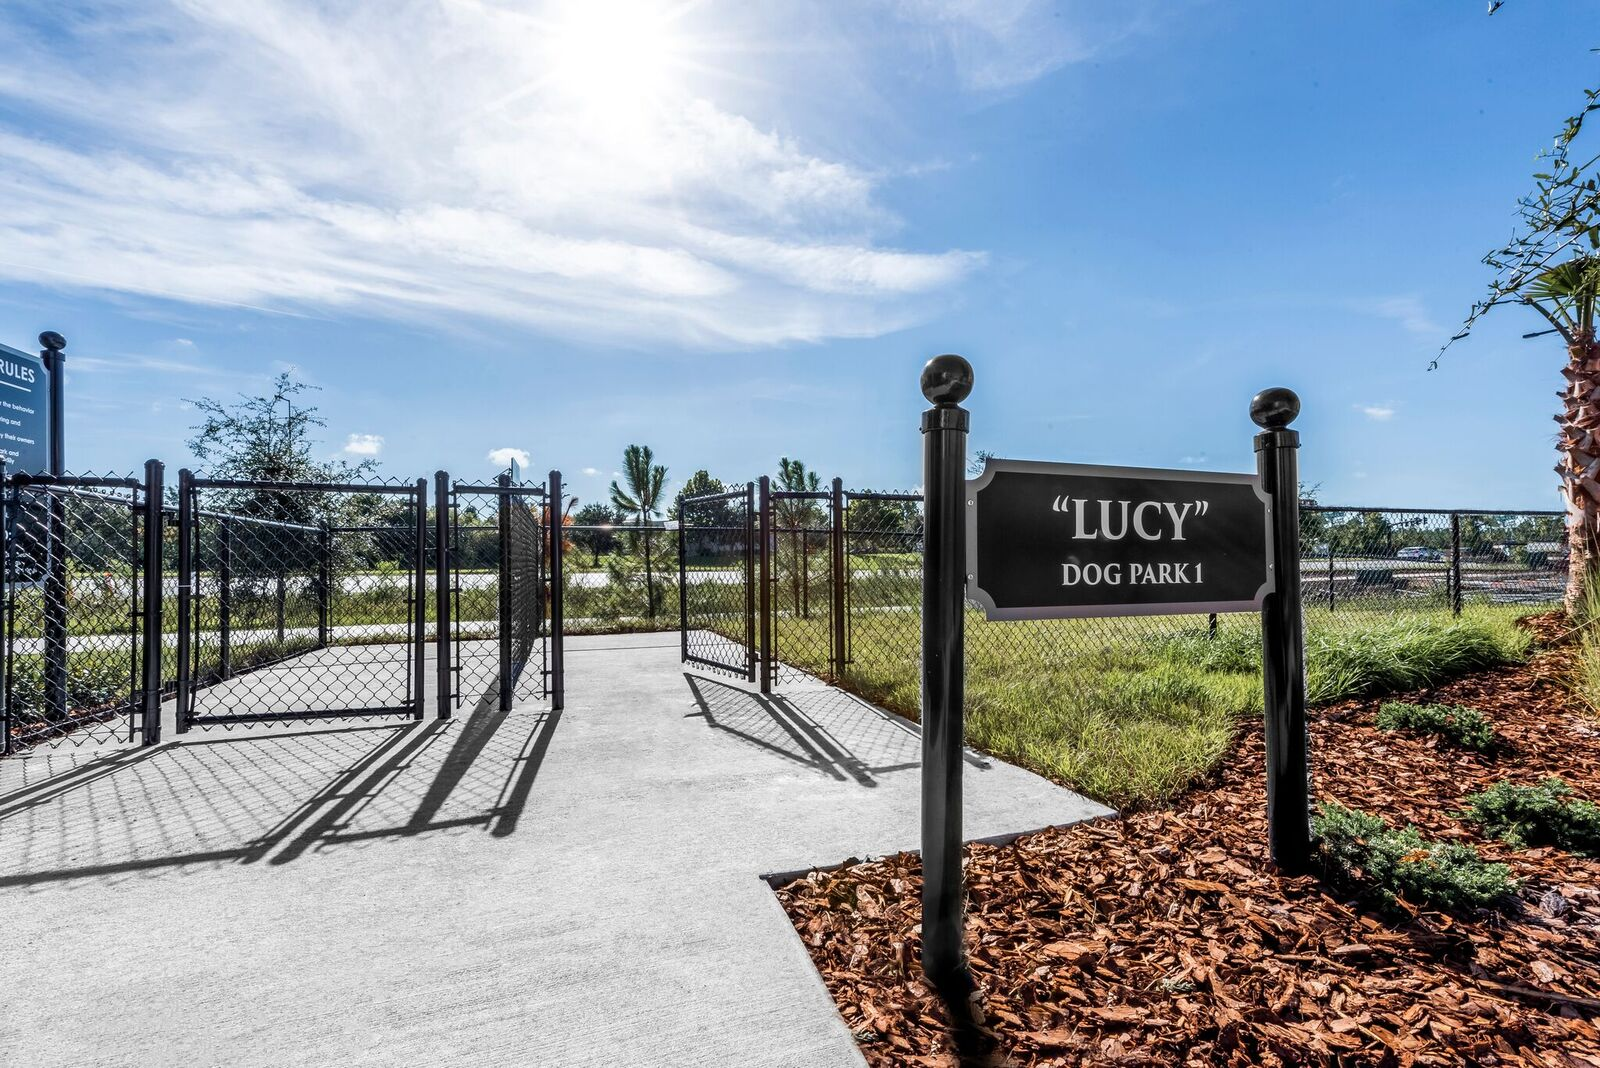 Dog Park Access at Vernazza, Florida